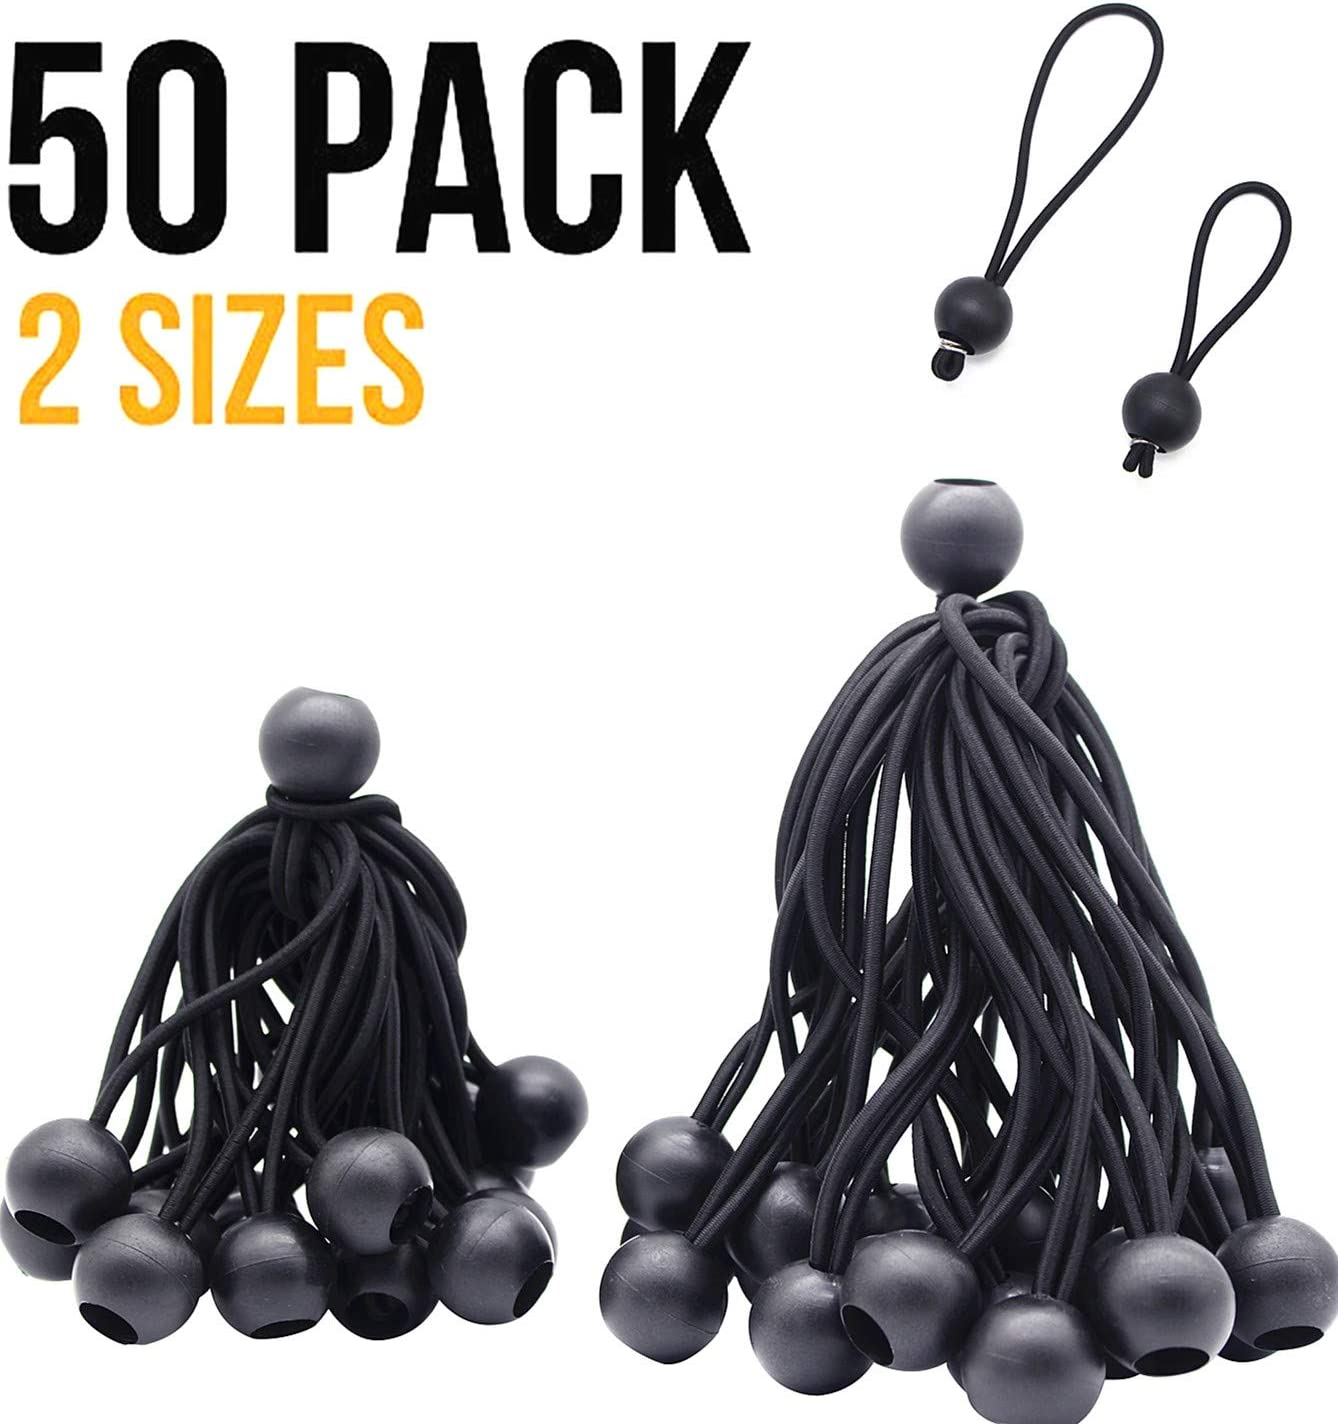 4inch & 6 inch 50PK Ball Bungee Canopy Cord Black Color For Securing Household Items, Securing Automotive Items - -